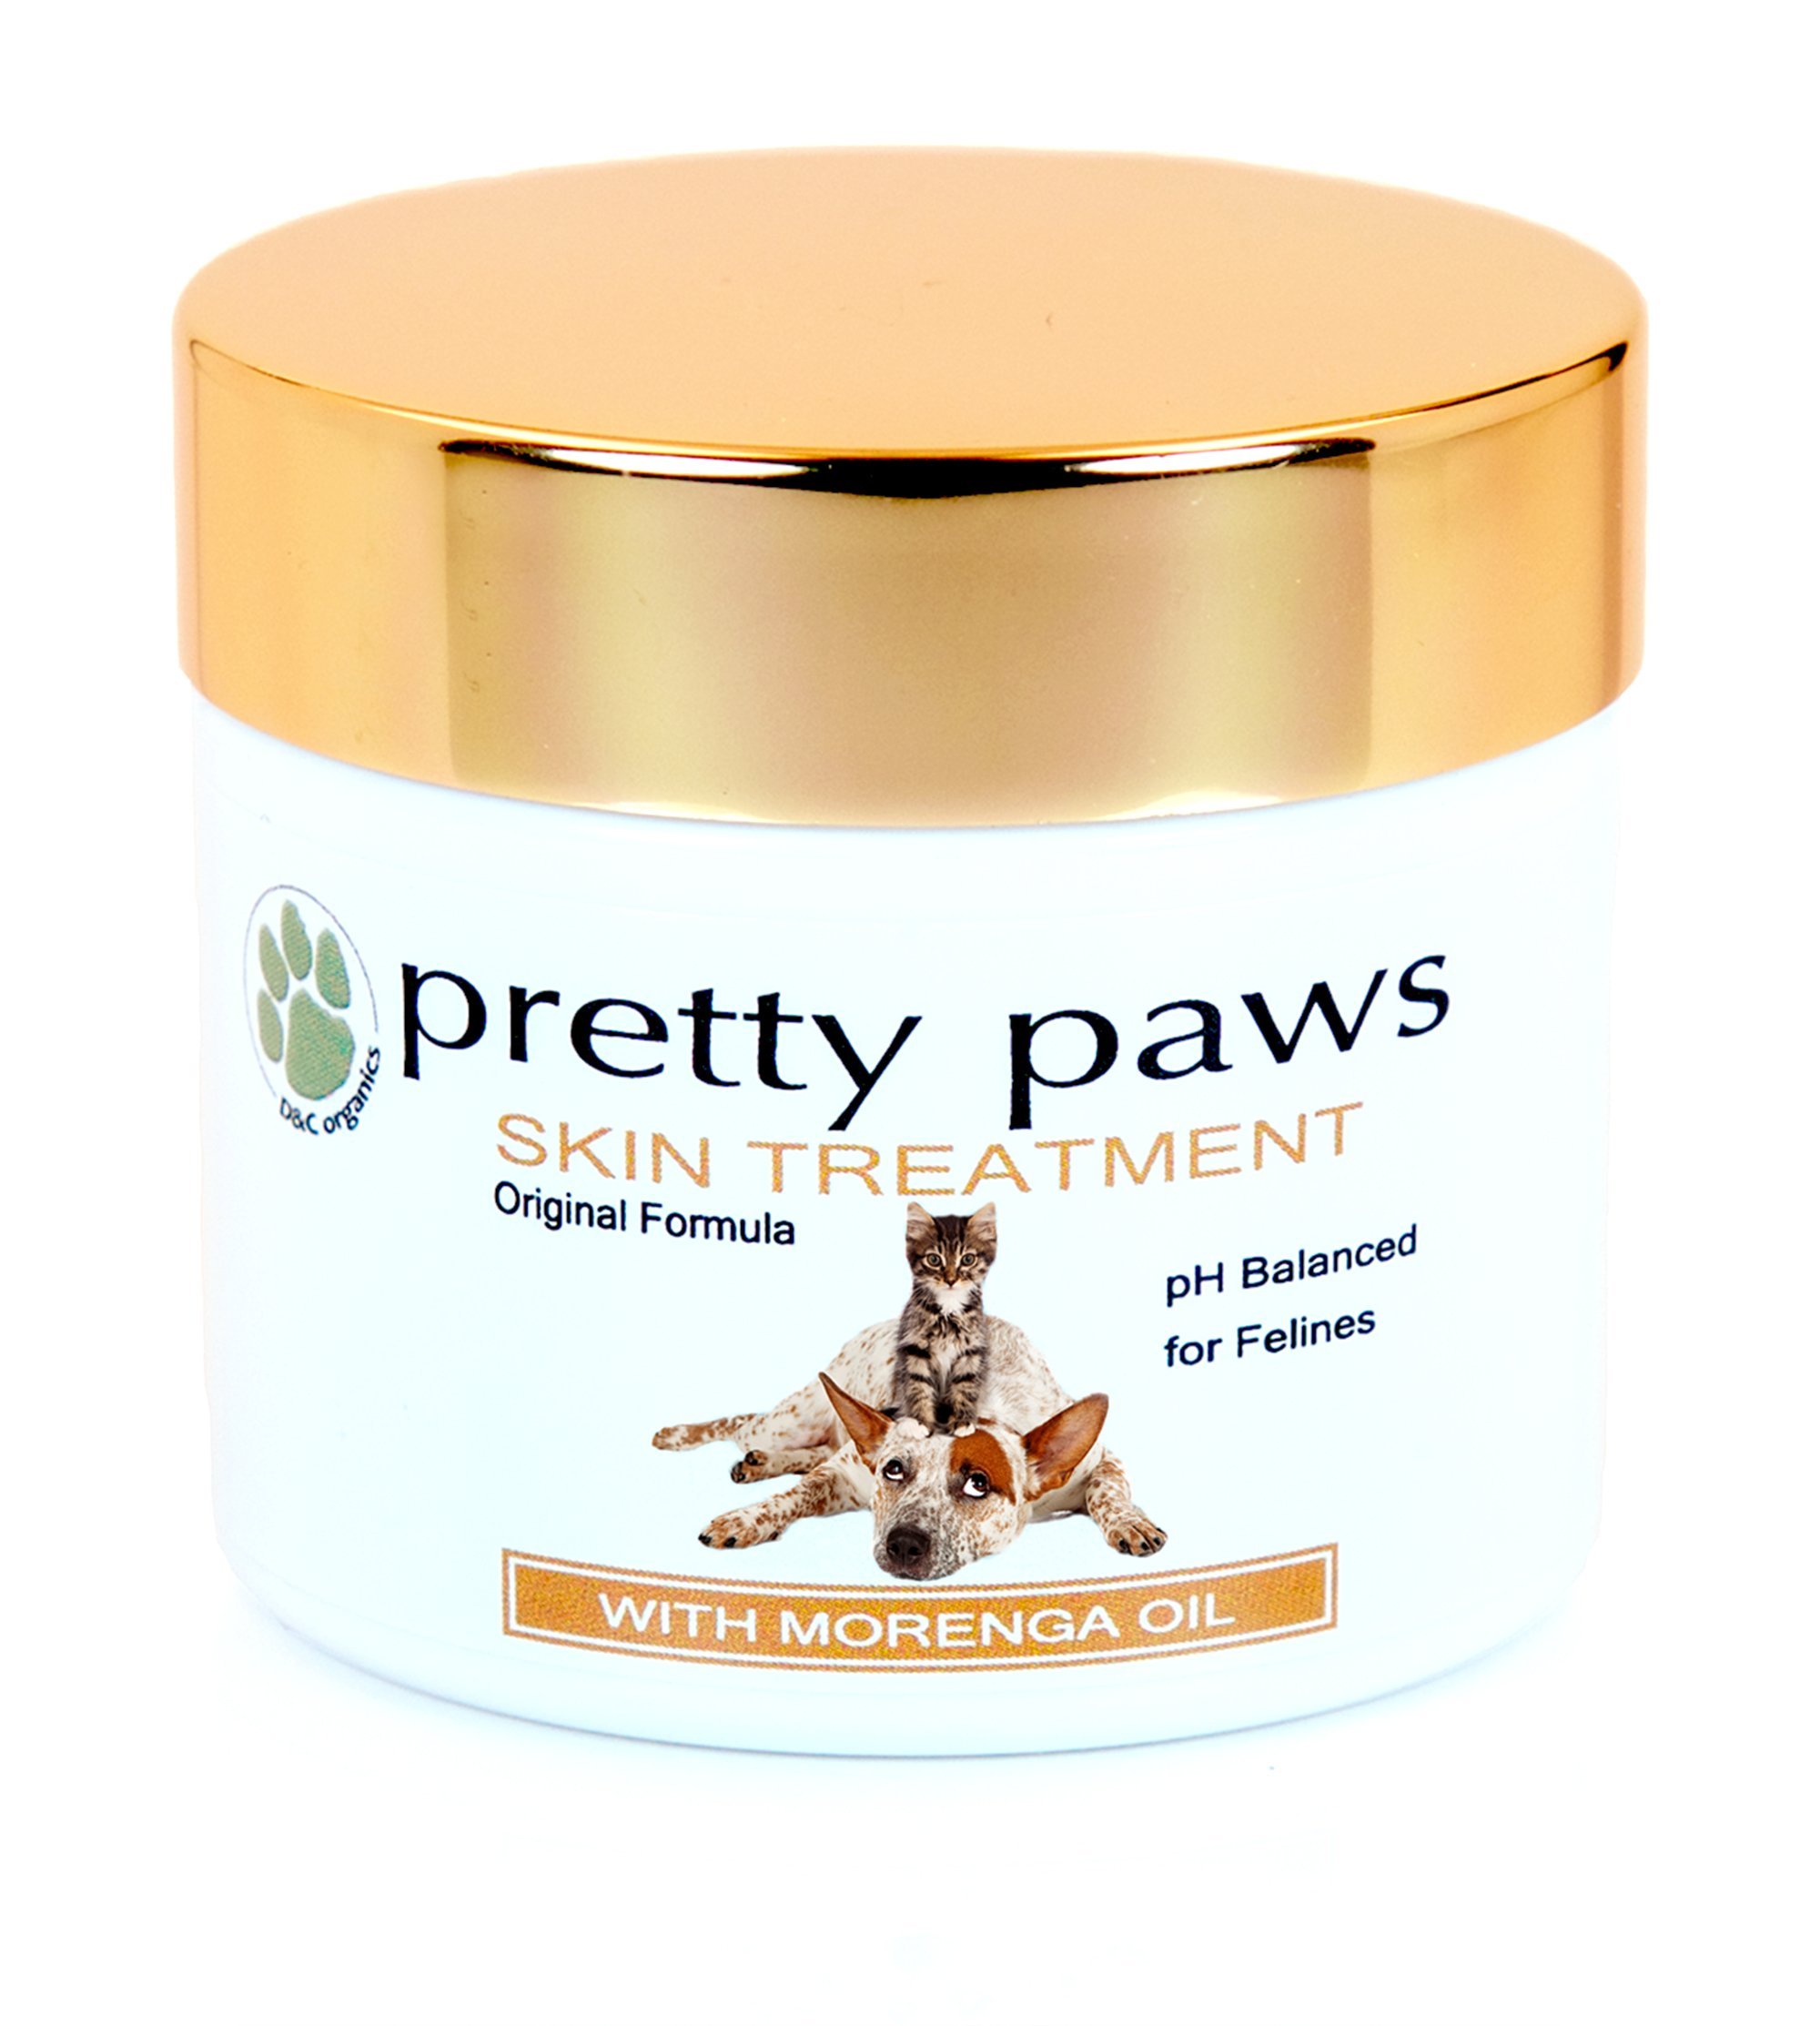 Cat Hot Spot Treatment. Pain Relief for Paw Disorders, Dermatitis, Infection, Dry Itchy Skin, Rashes, Bites, Allergic reactions. Antiseptic Antifungal Holistic Vet Approved - Concentrated Pretty Paws